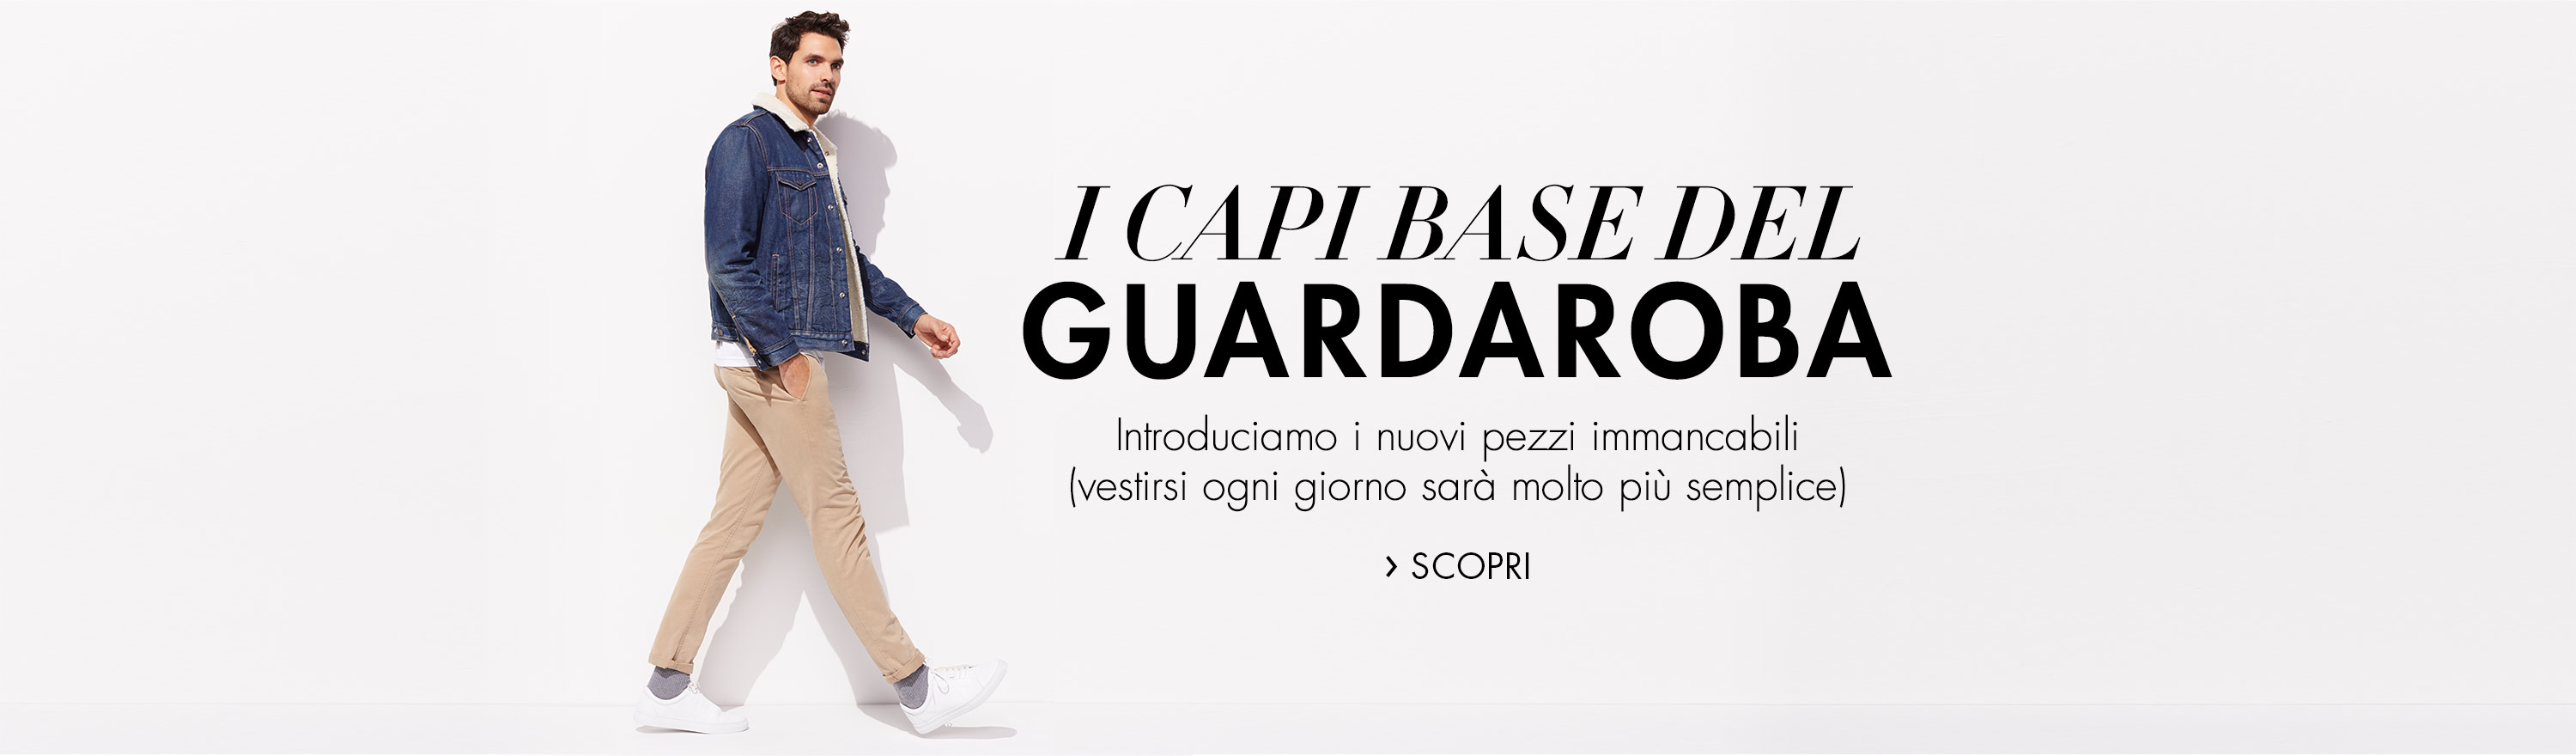 I capi base del guardaroba